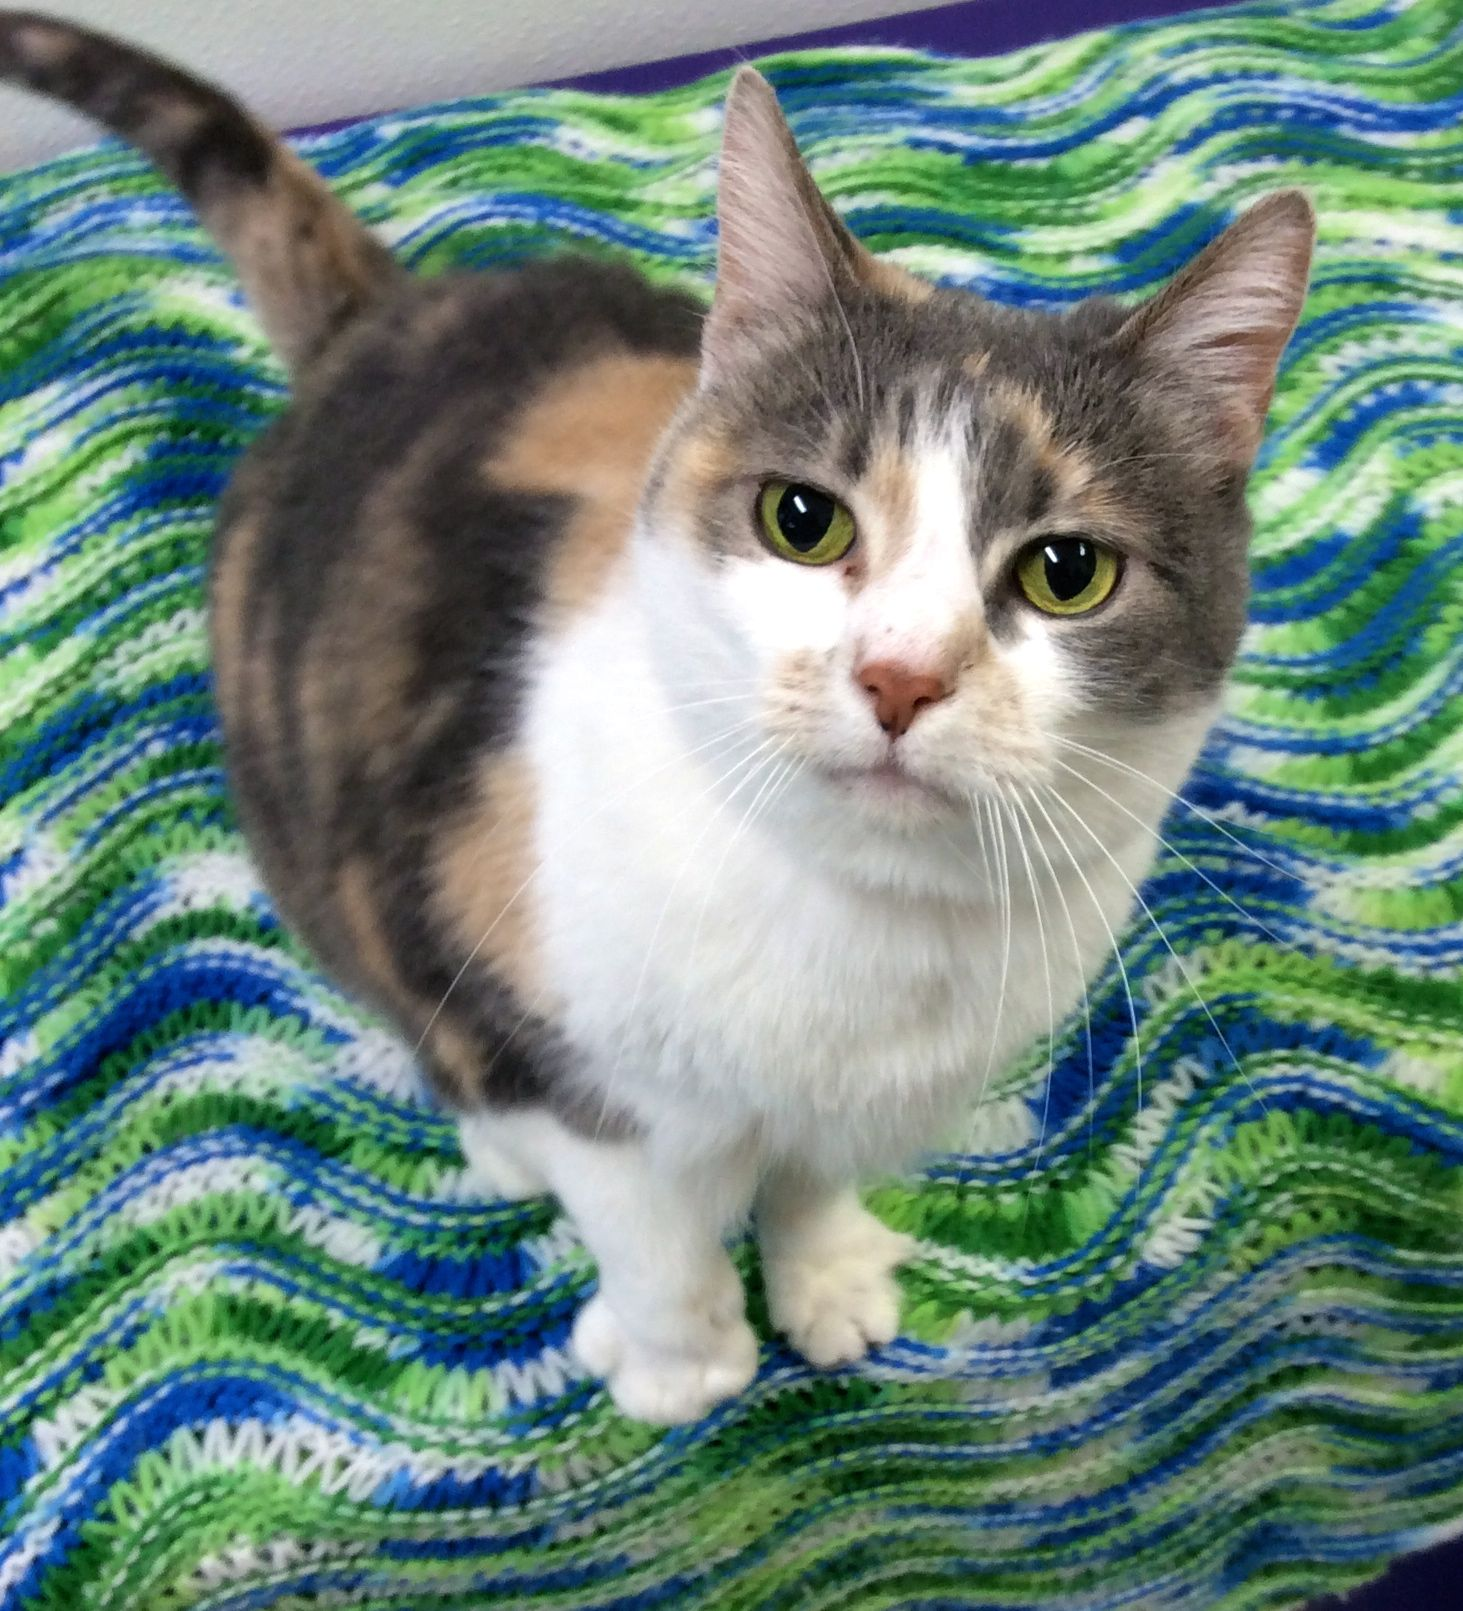 Kallie is just one of the beautiful cats up for adoption right now